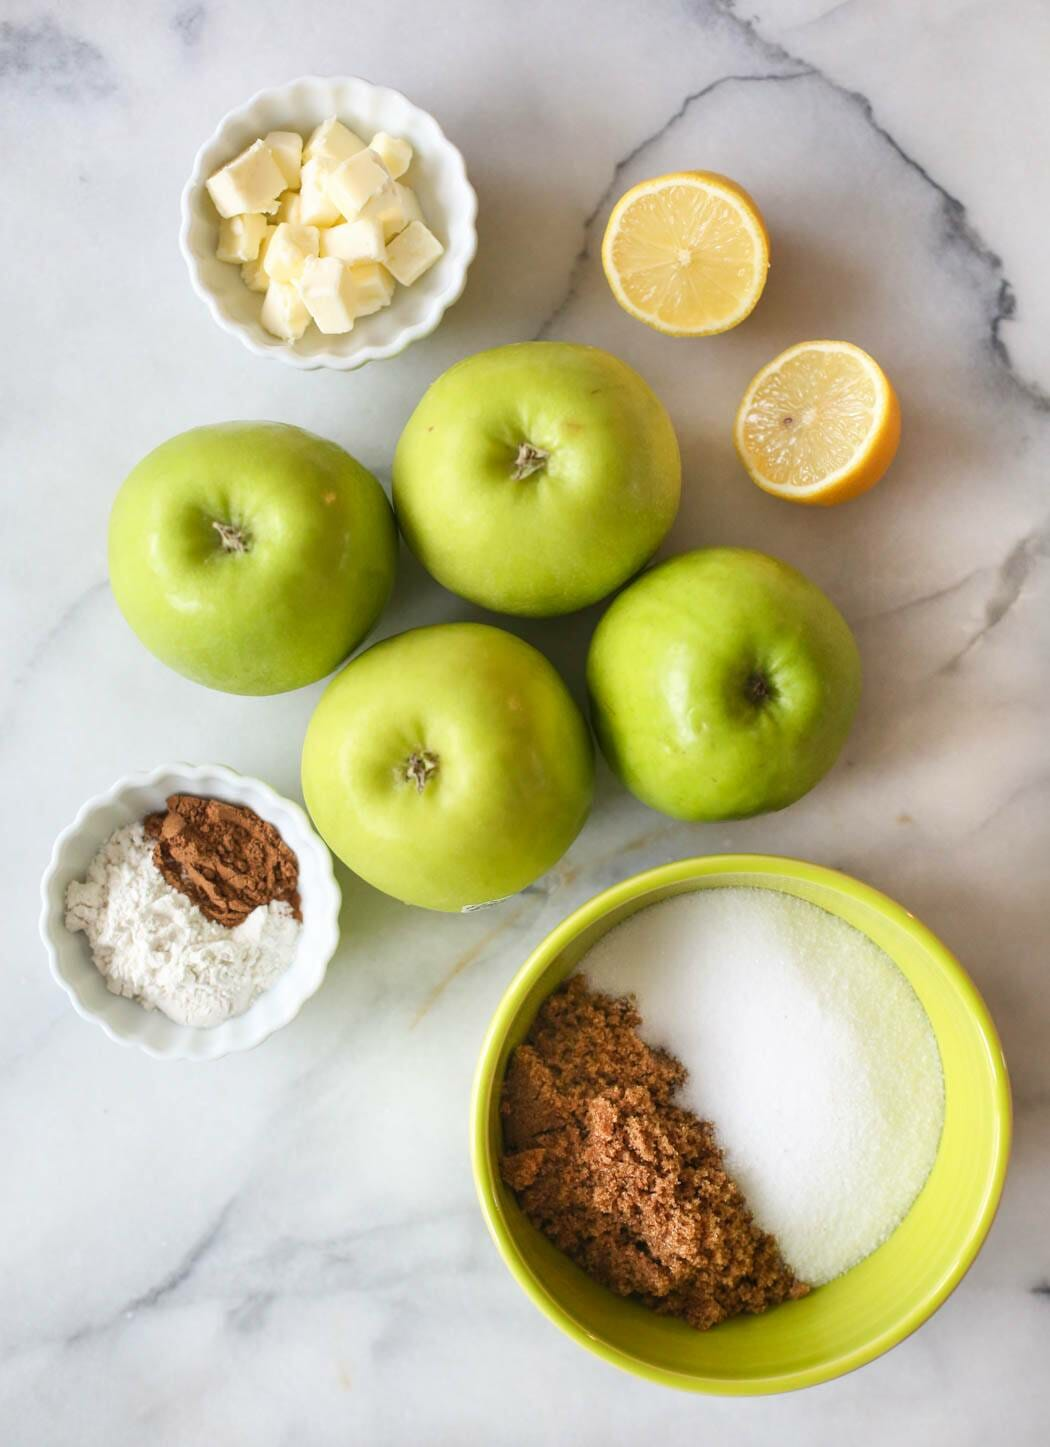 Ingredients for apple pie on a marble slab